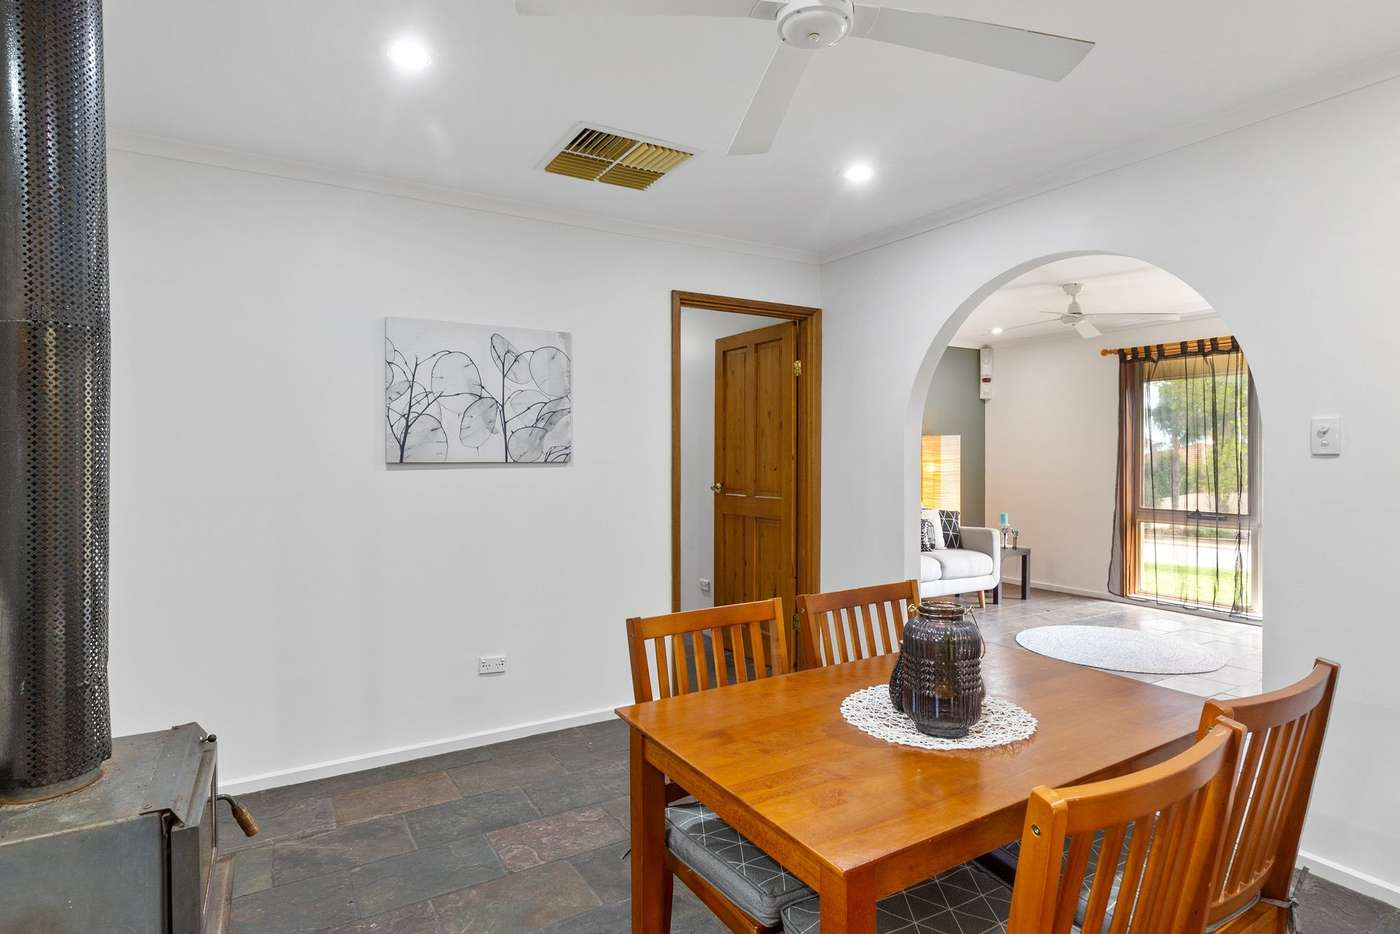 Sixth view of Homely house listing, 38 Edith Street, Morphett Vale SA 5162